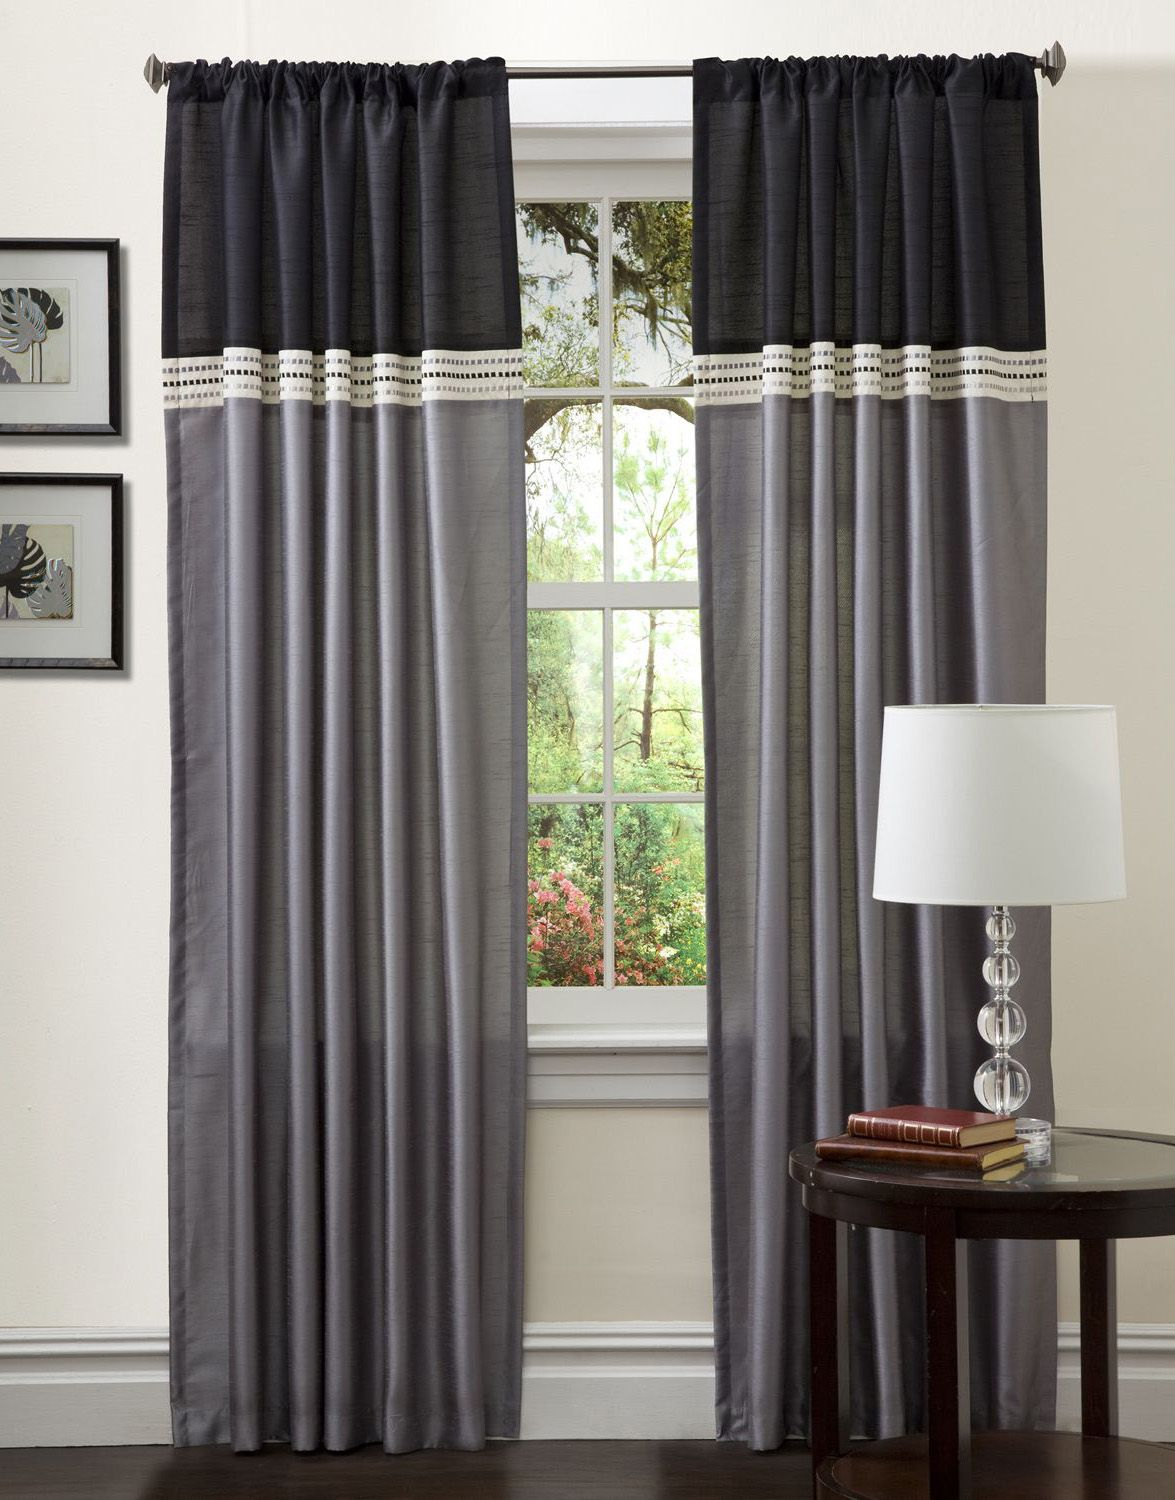 Creative Ways To Extend The Length Of Your Curtain Panels Add